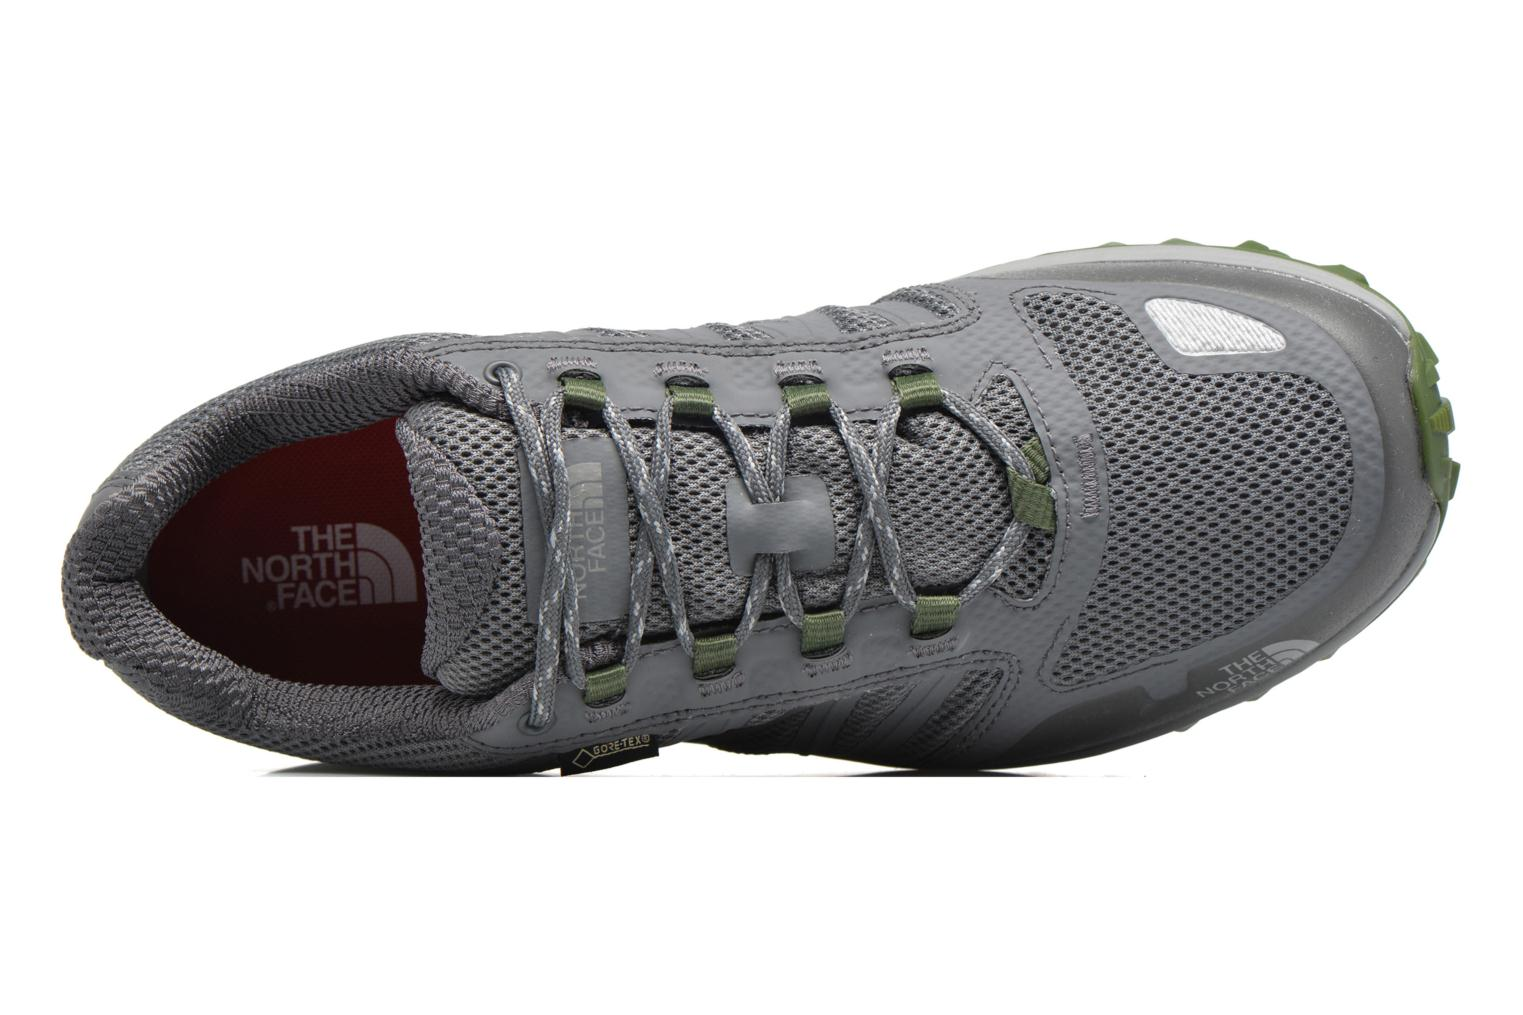 Litewave Fastpack GTX zinc grey / scallion green